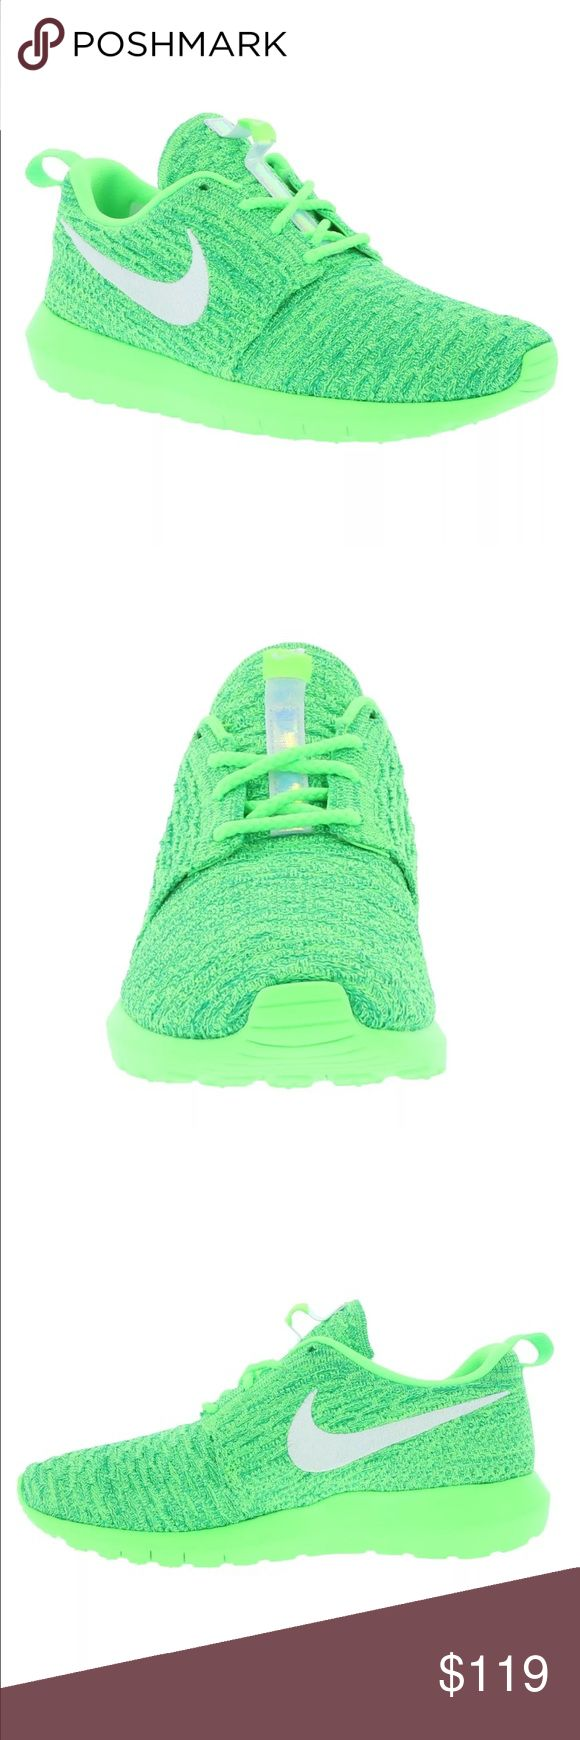 BRAND NEW! ❤ ROSHERUN ROSH ROSHE FLYKNIT NEON SHOE New! ❤❤❤ Nike Shoes Athletic Shoes